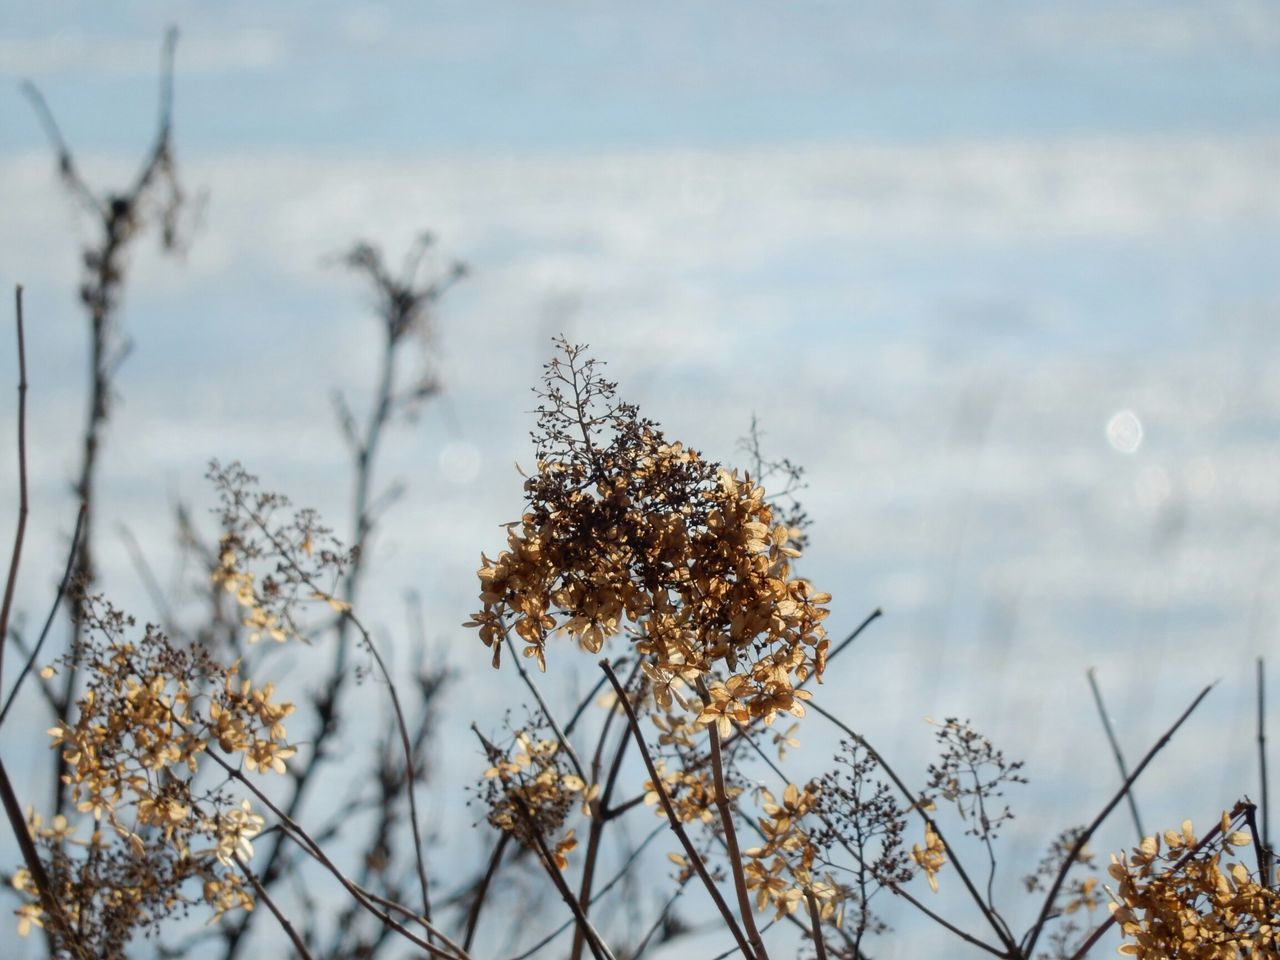 nature, beauty in nature, plant, no people, growth, winter, flower, outdoors, water, day, focus on foreground, snow, branch, cold temperature, tree, fragility, close-up, freshness, sky